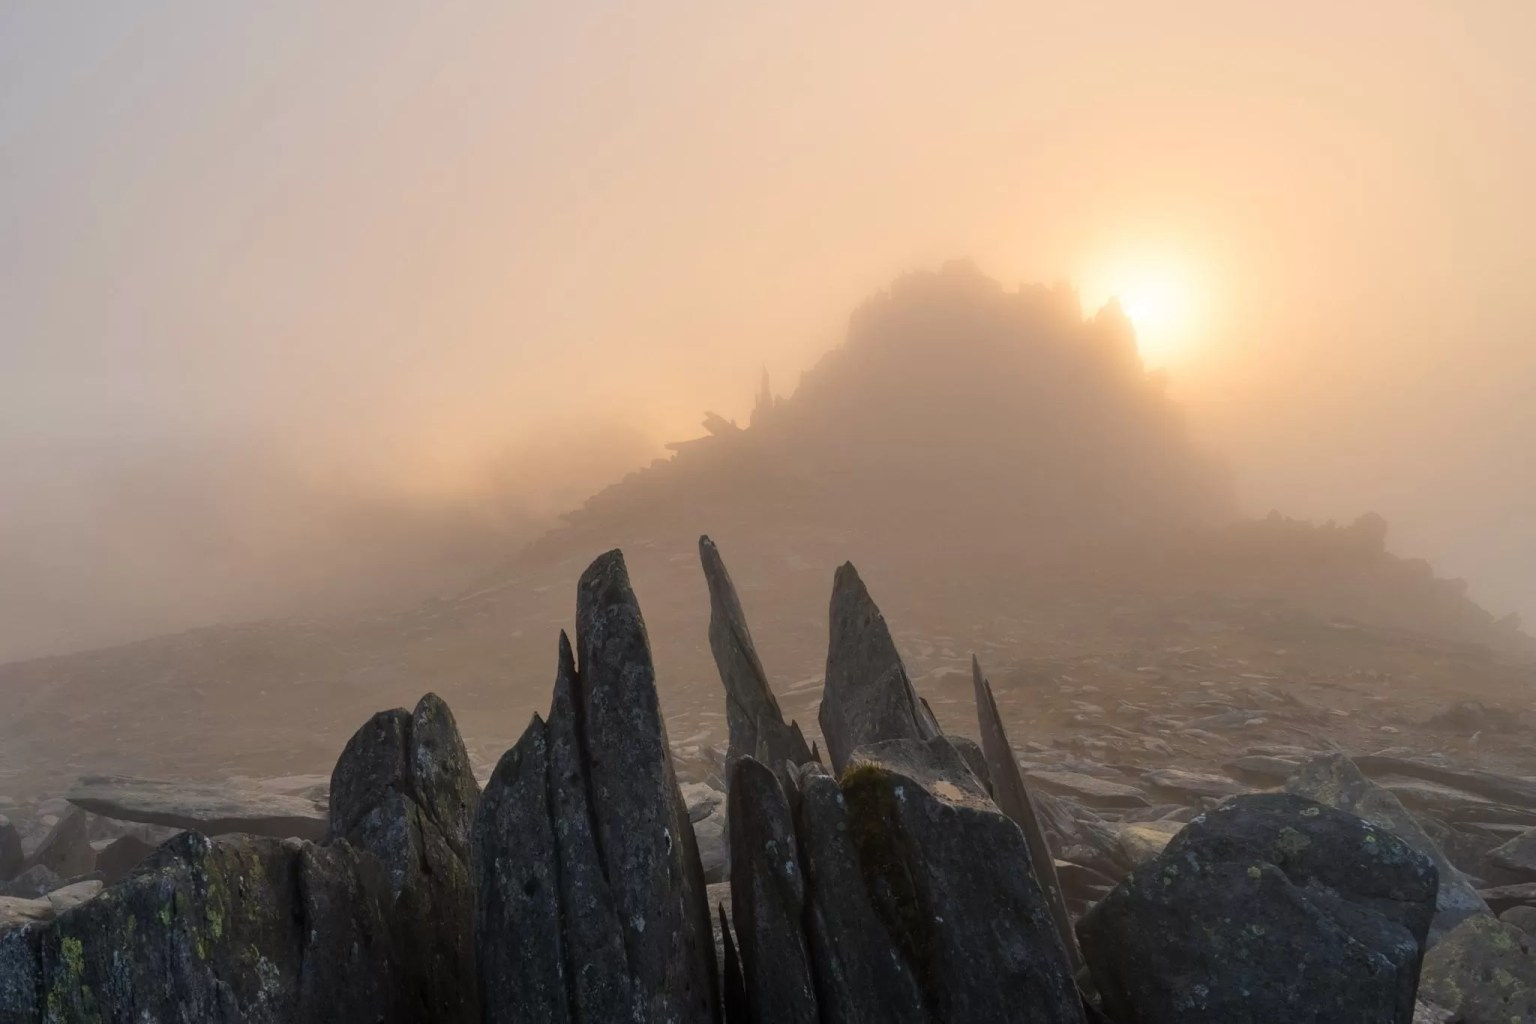 Castell y Gwynt Sunset - Castle of the Winds - Snowdonia Photography